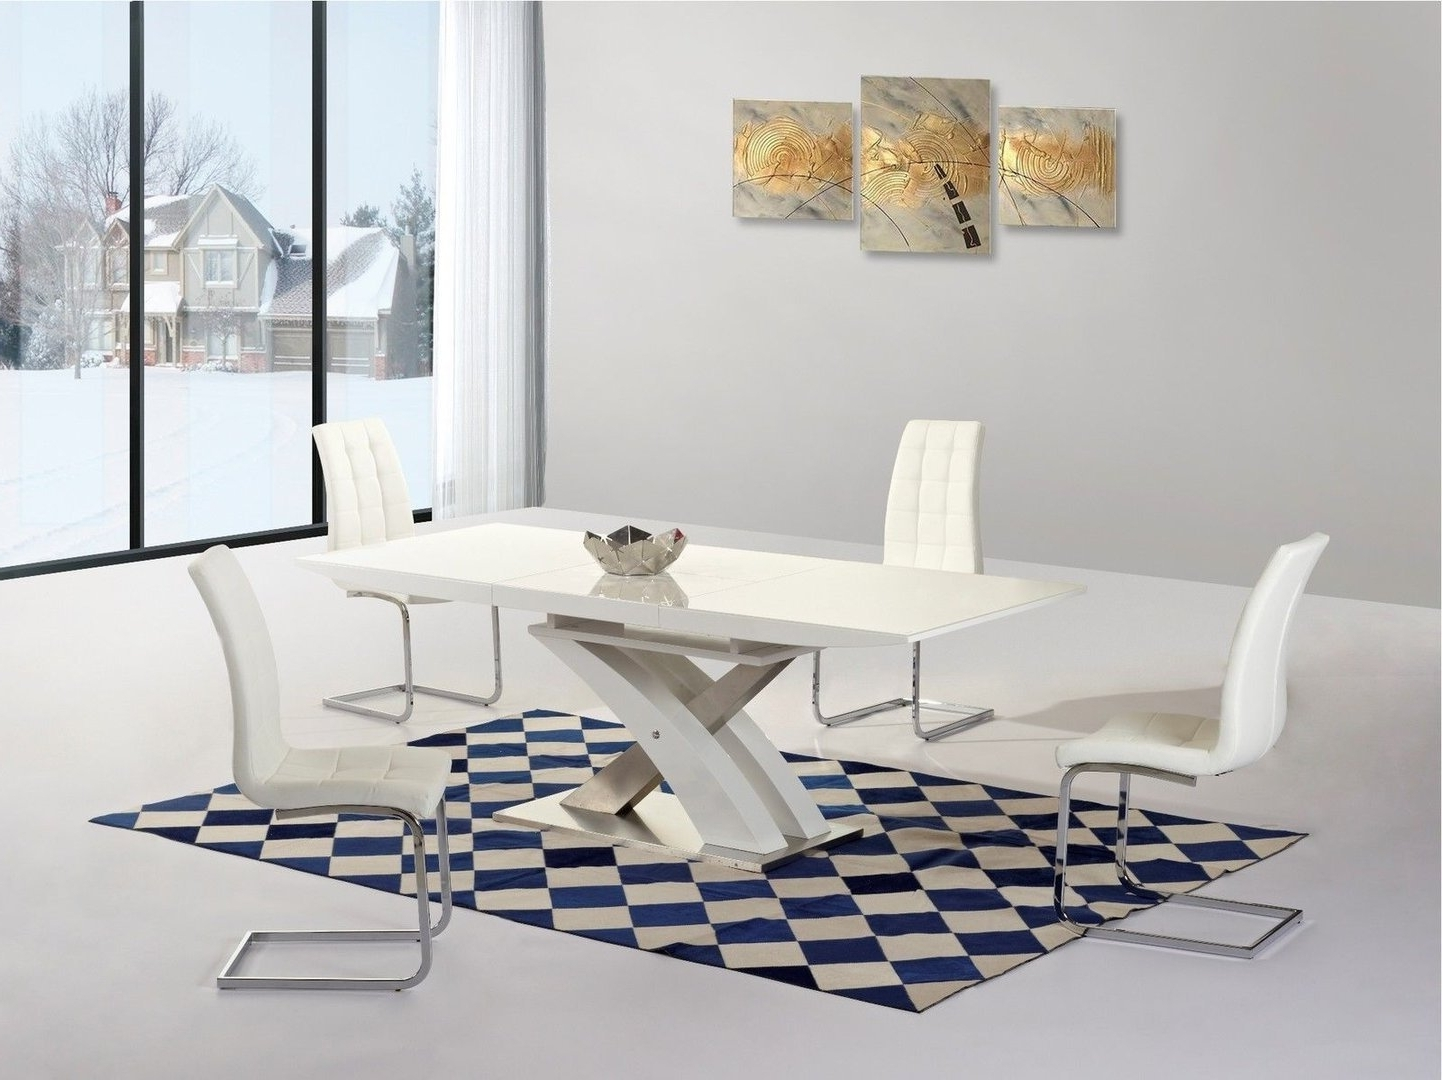 White Extending Gloss Dining Table And 4 Chairs – Homegenies Regarding Most Popular Extending White Gloss Dining Tables (View 4 of 25)